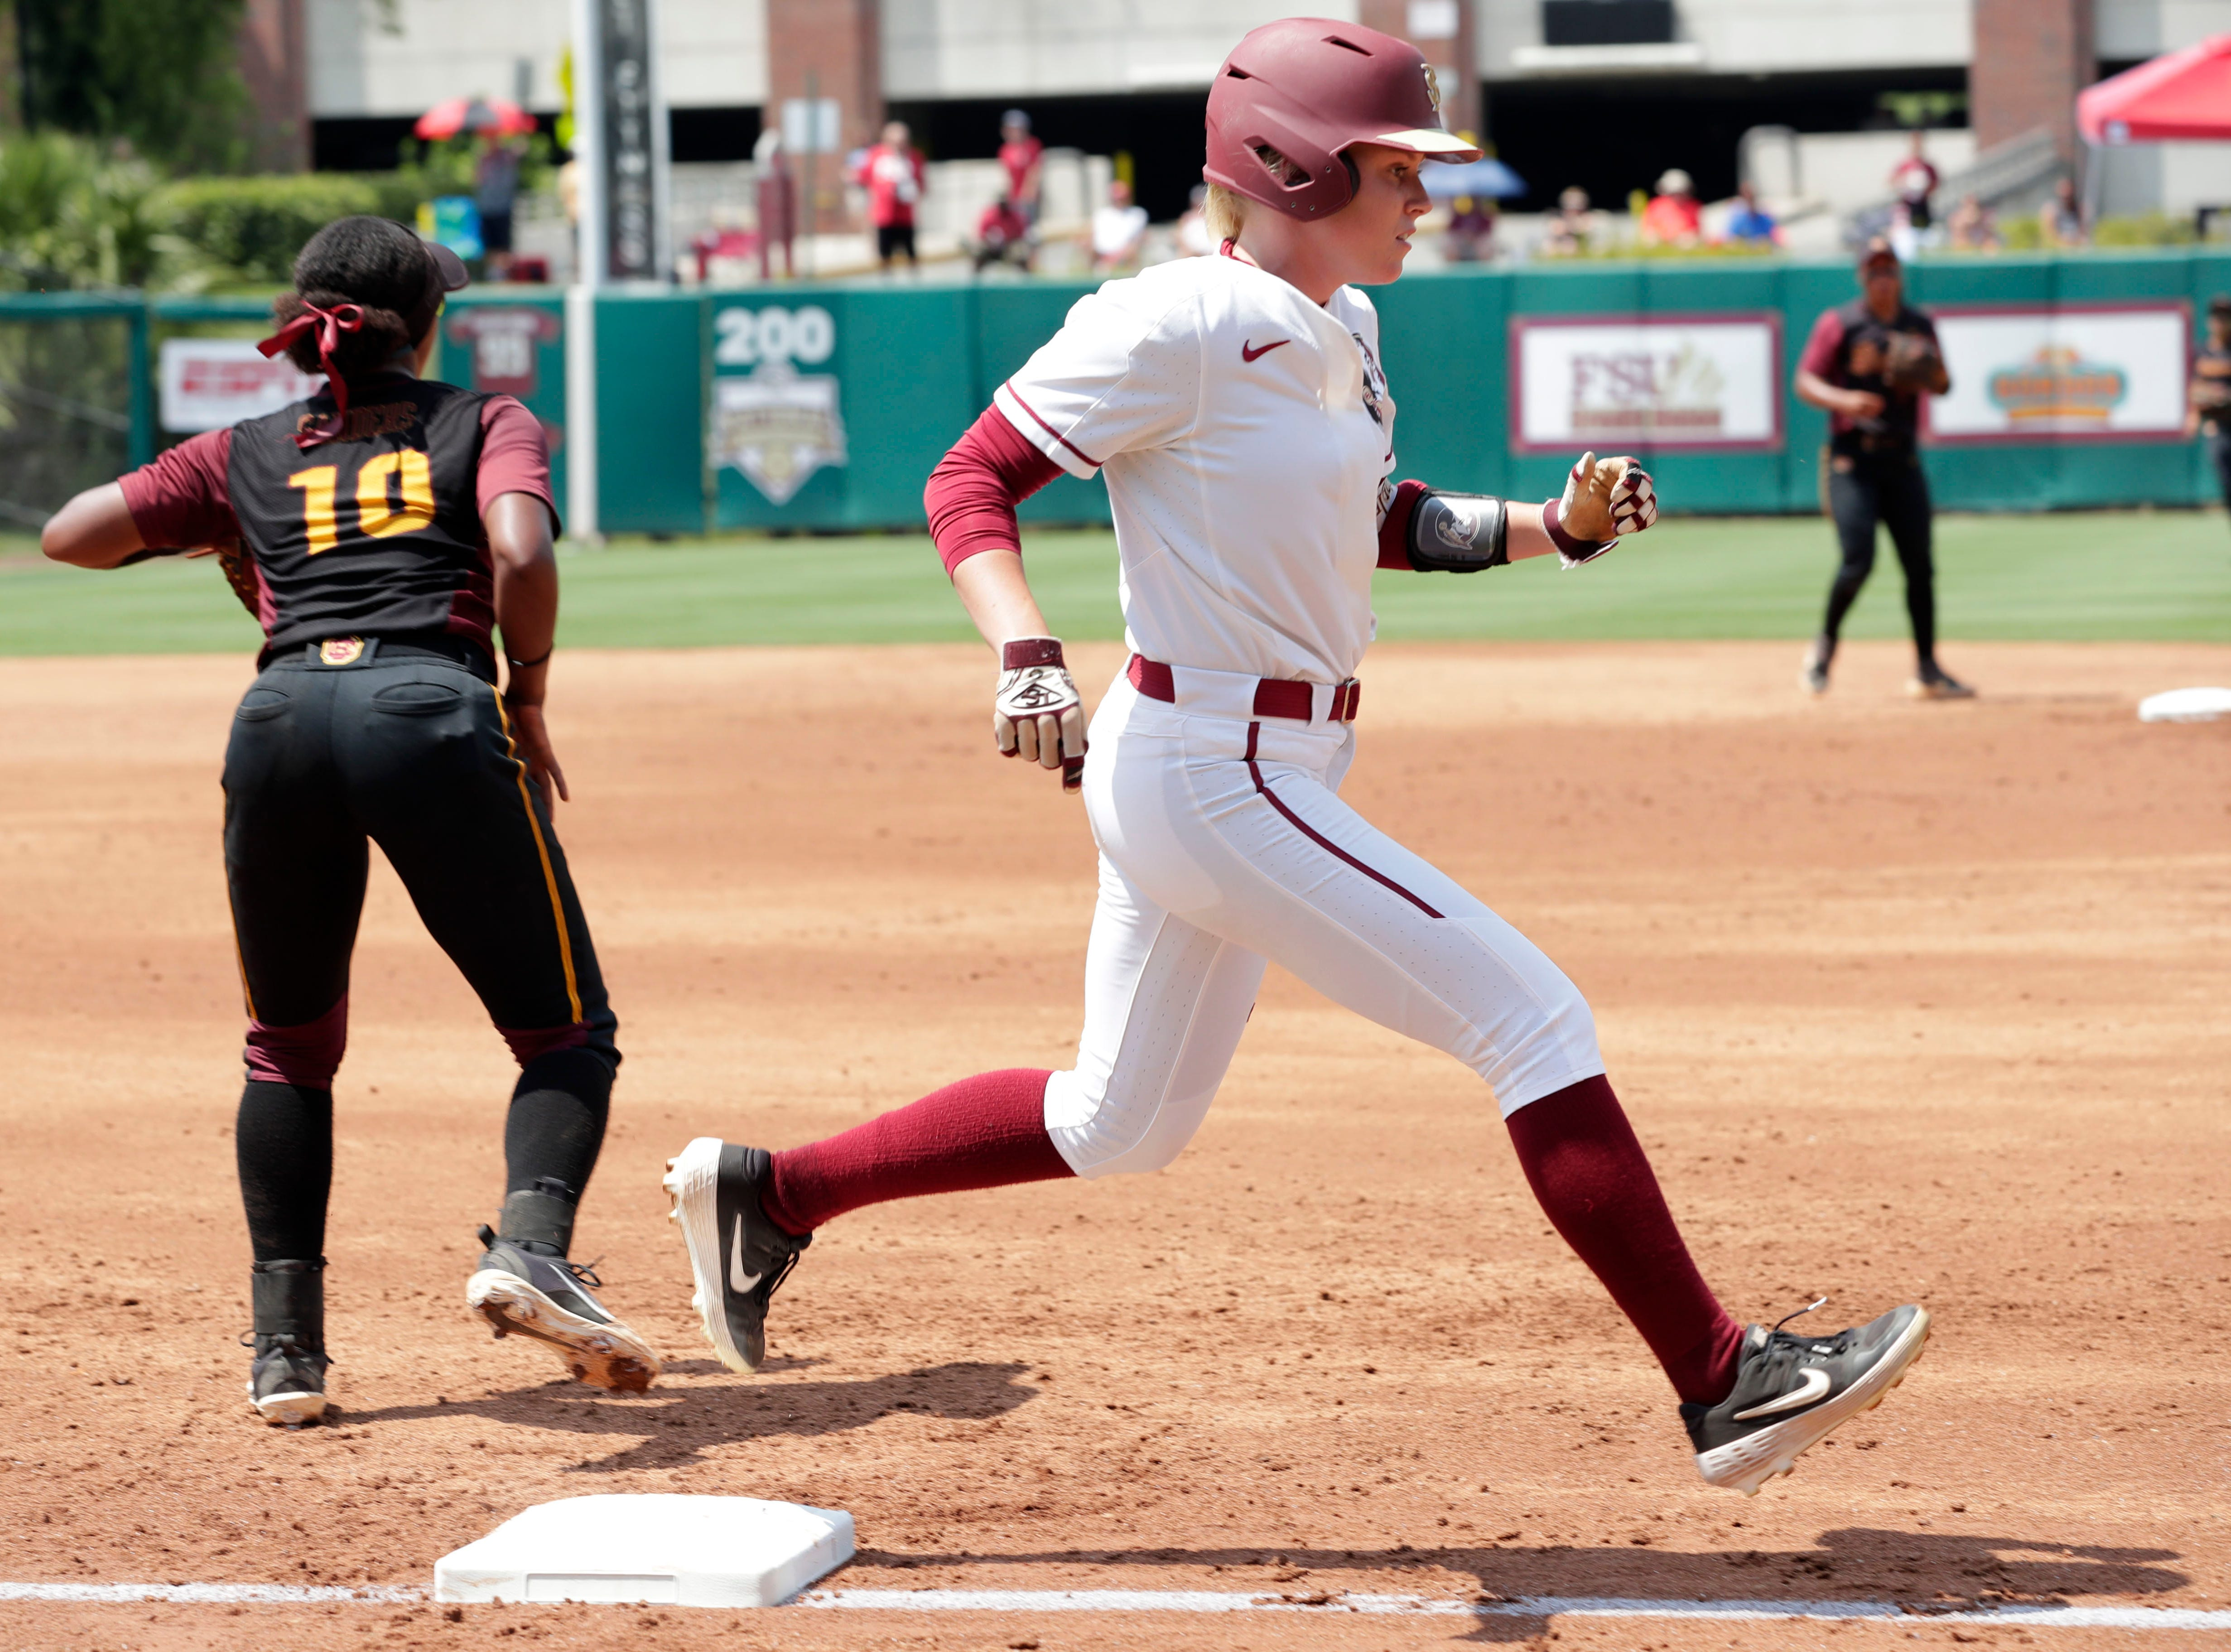 Florida State Seminoles infielder Dani Morgan (1) gets tagged out at first base. The Florida State Seminoles host the Bethune-Cookman Wildcats in the first round of the NCAA Regional Playoffs Friday, May 17, 2019.